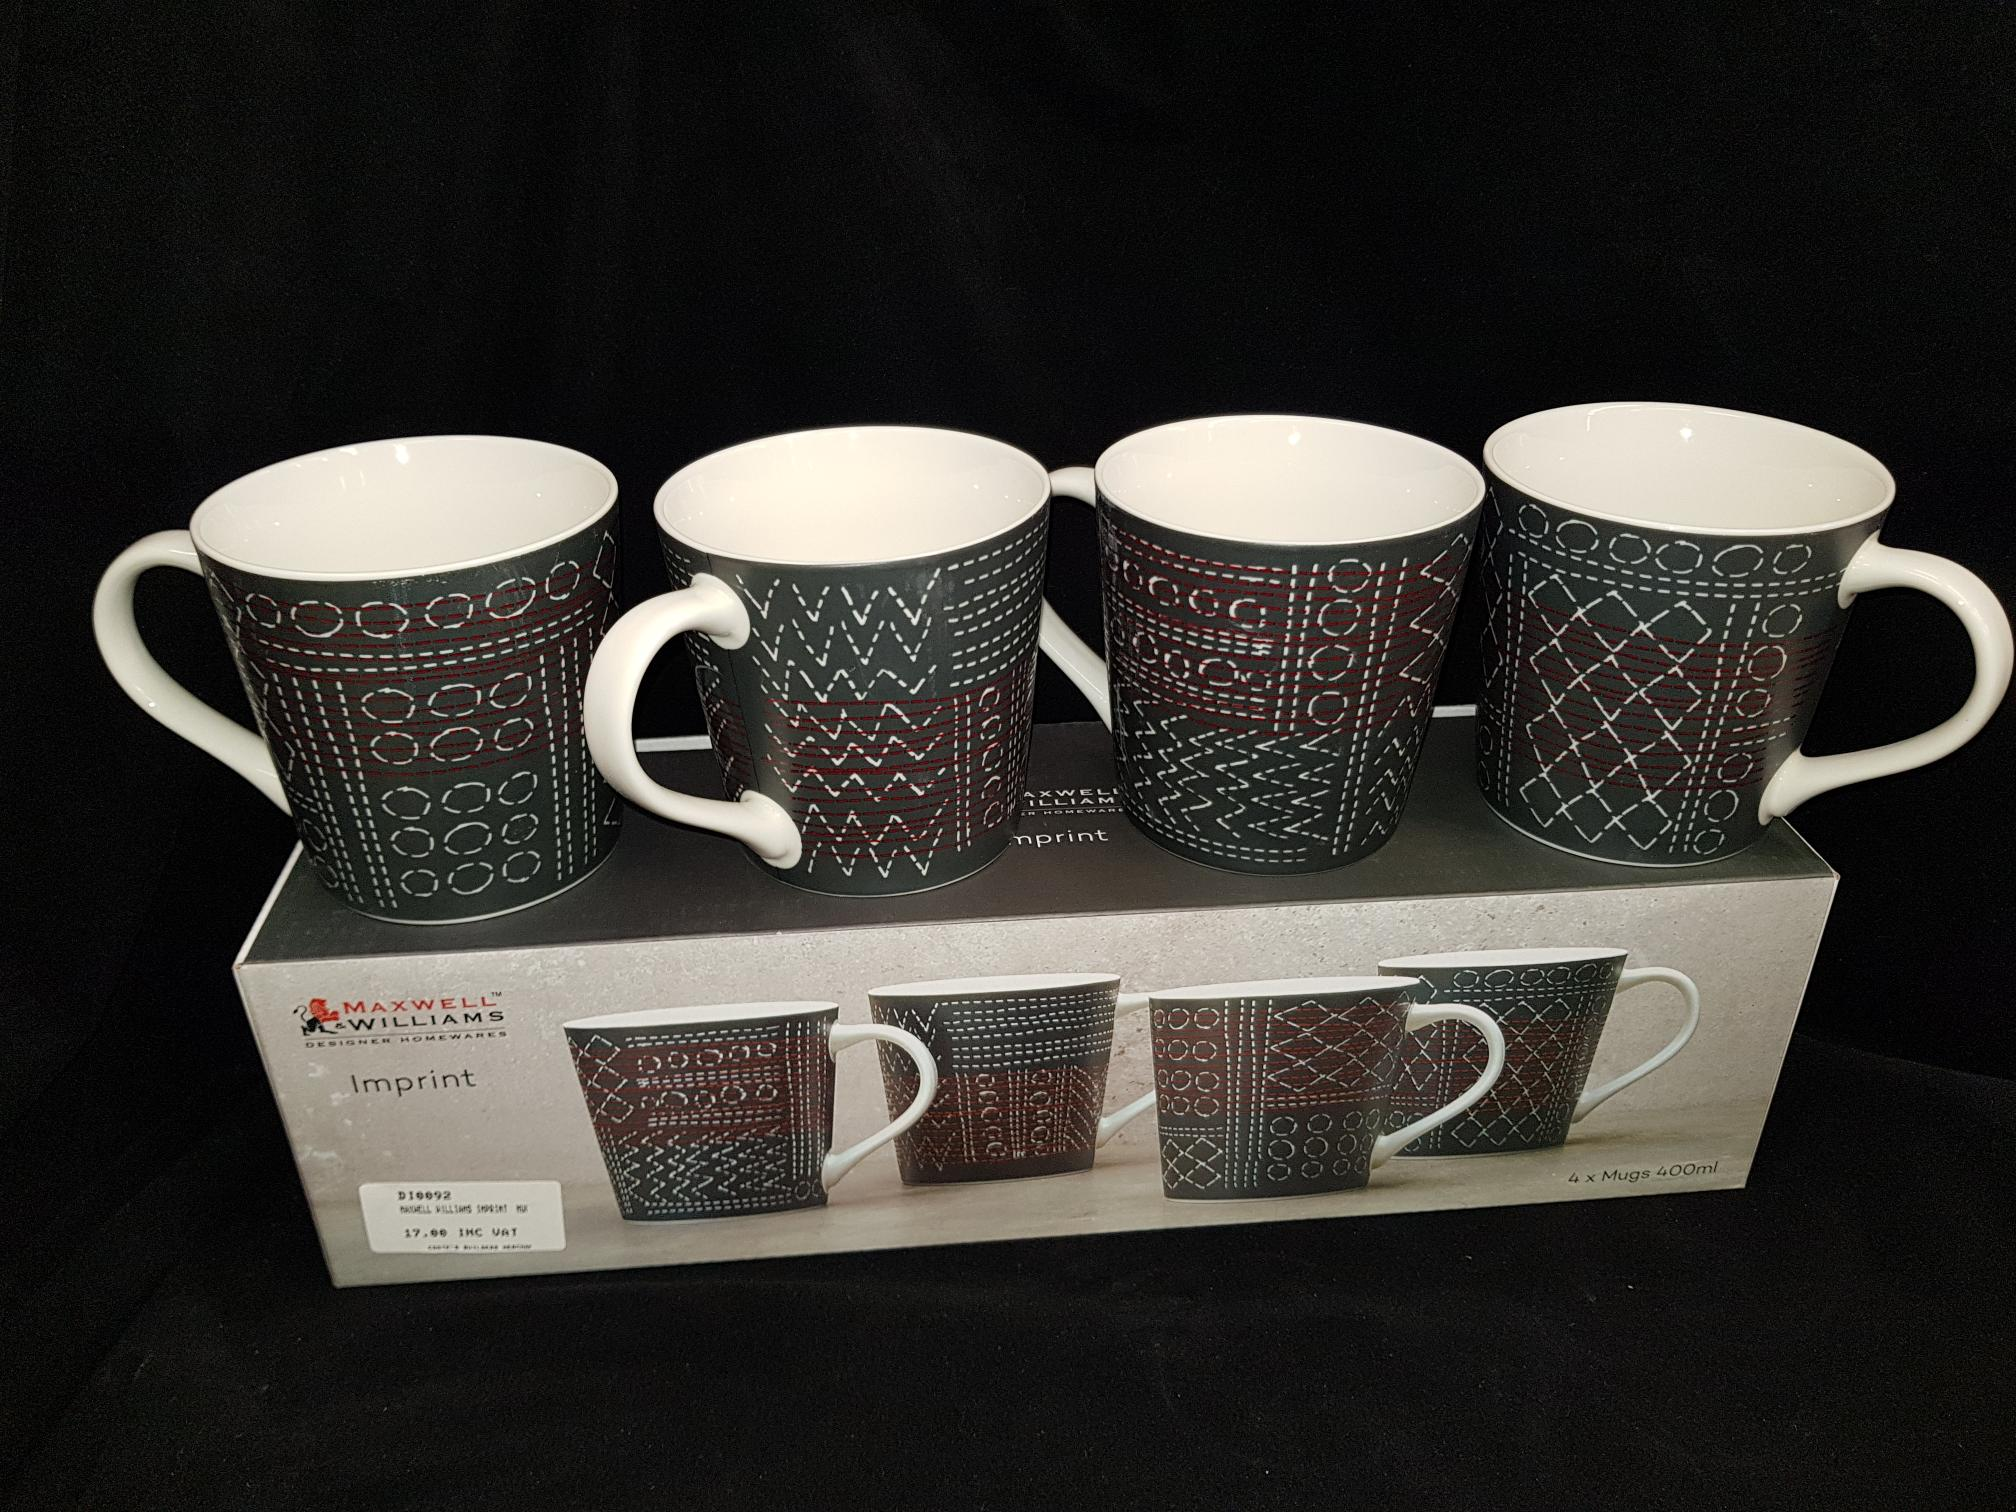 Maxwell Williams Imprint Mugs